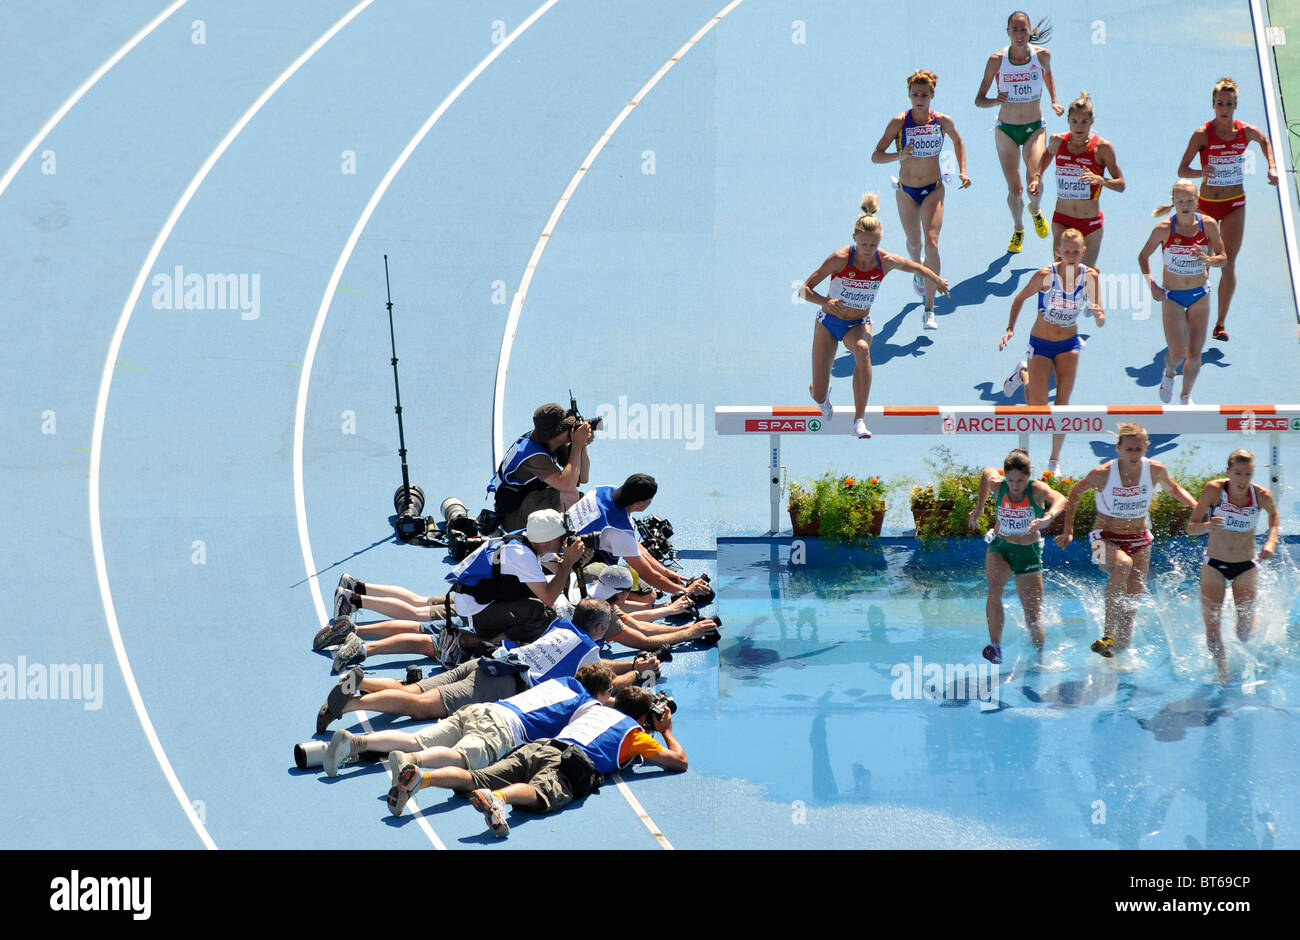 photographers get low position to capture the participants of a female 3000m steeplechase jumping over water obstacle Stock Photo